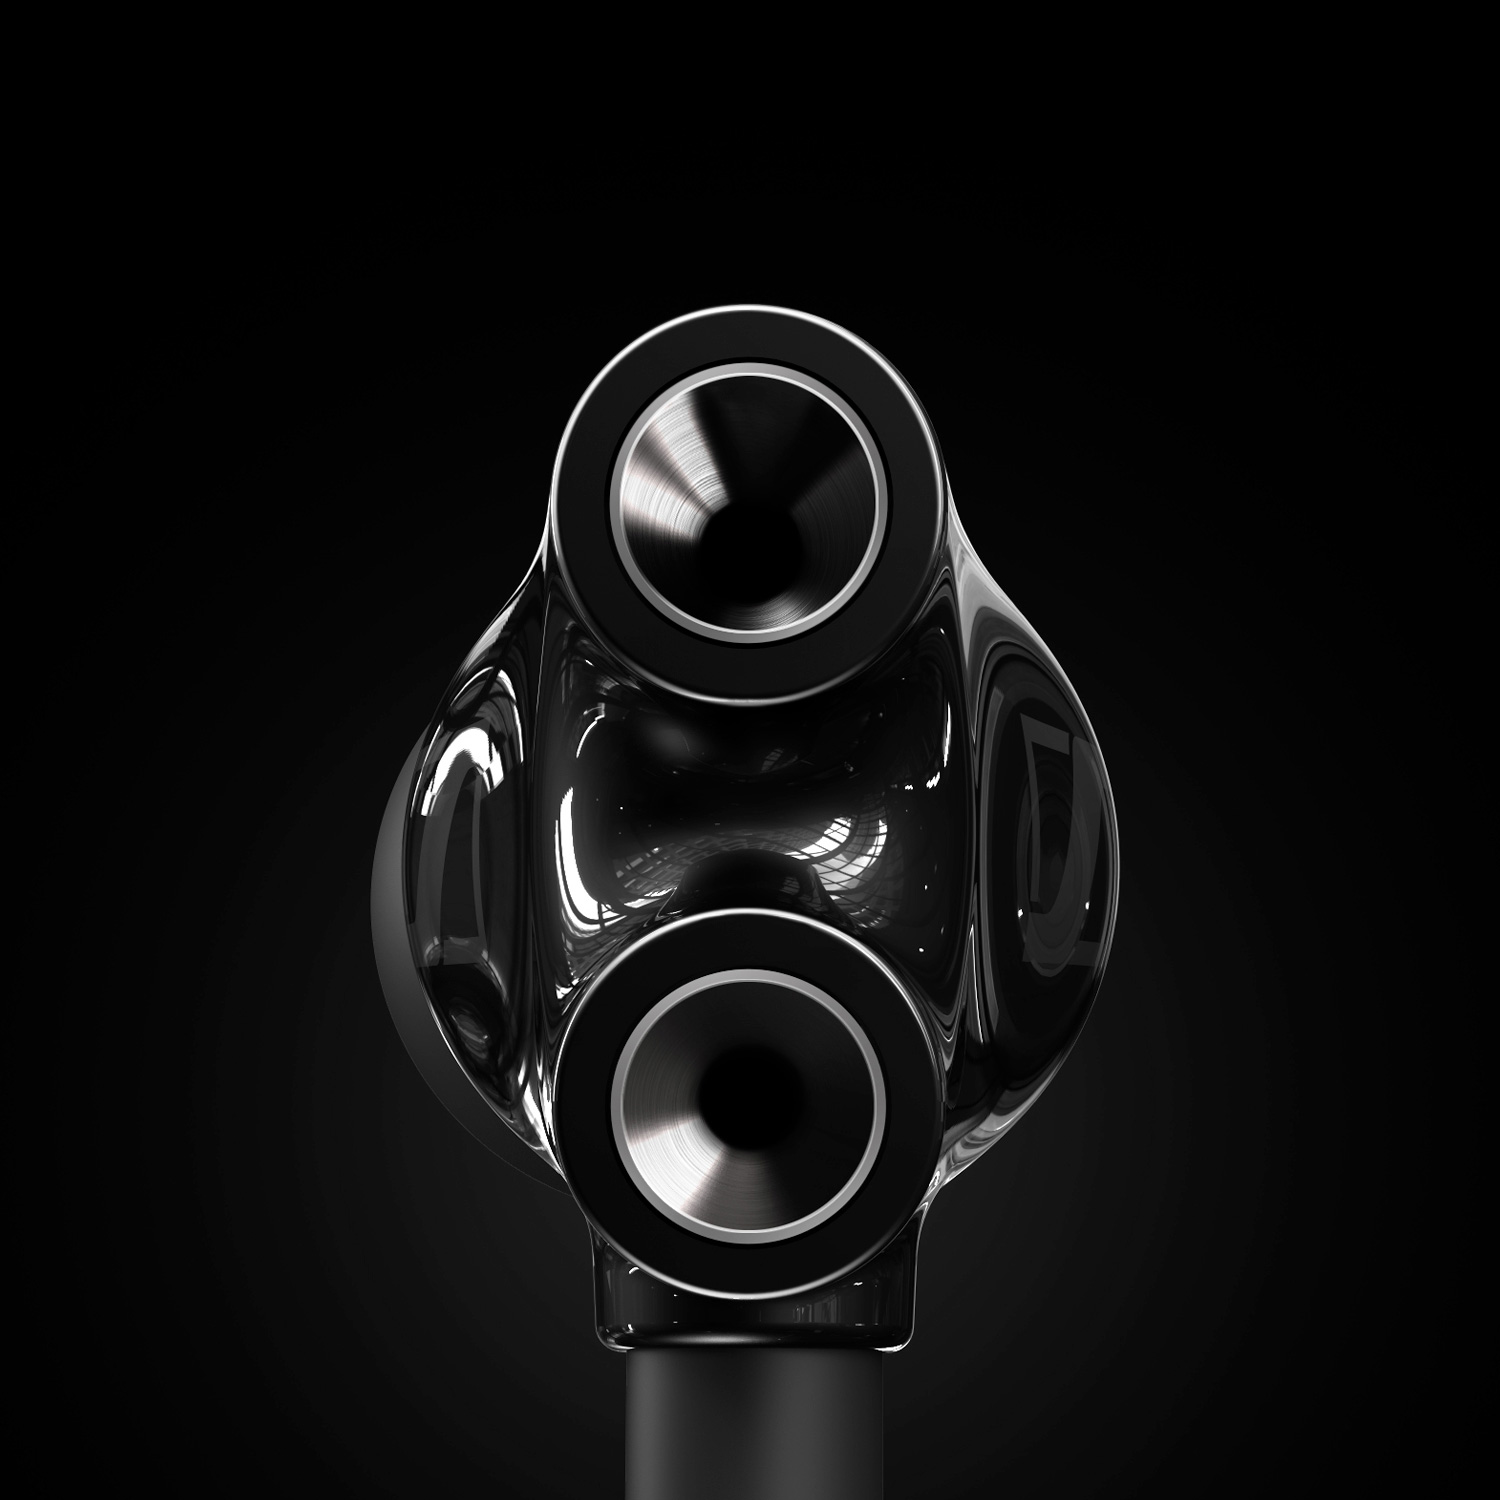 SENNHEISER IE 800 in-ear headphone